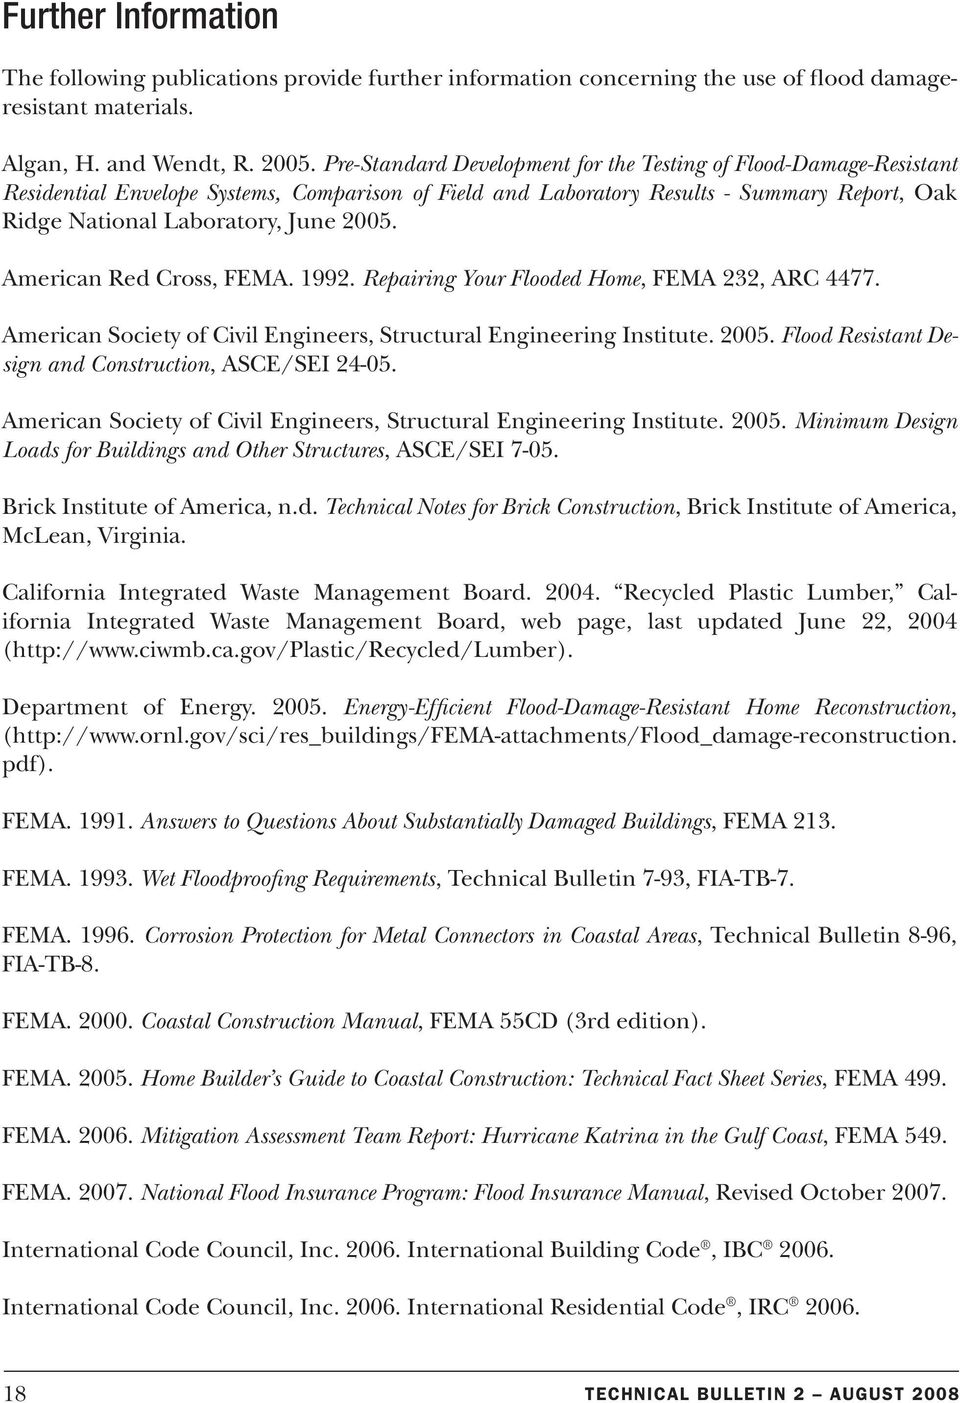 America Red Cross, FEMA. 1992. Repairig Your Flooded Home, FEMA 232, ARC 4477. America Society of Civil Egieers, Structural Egieerig Istitute. 2005. Flood Resistat Desig ad Costructio, ASCE/SEI 24-05.